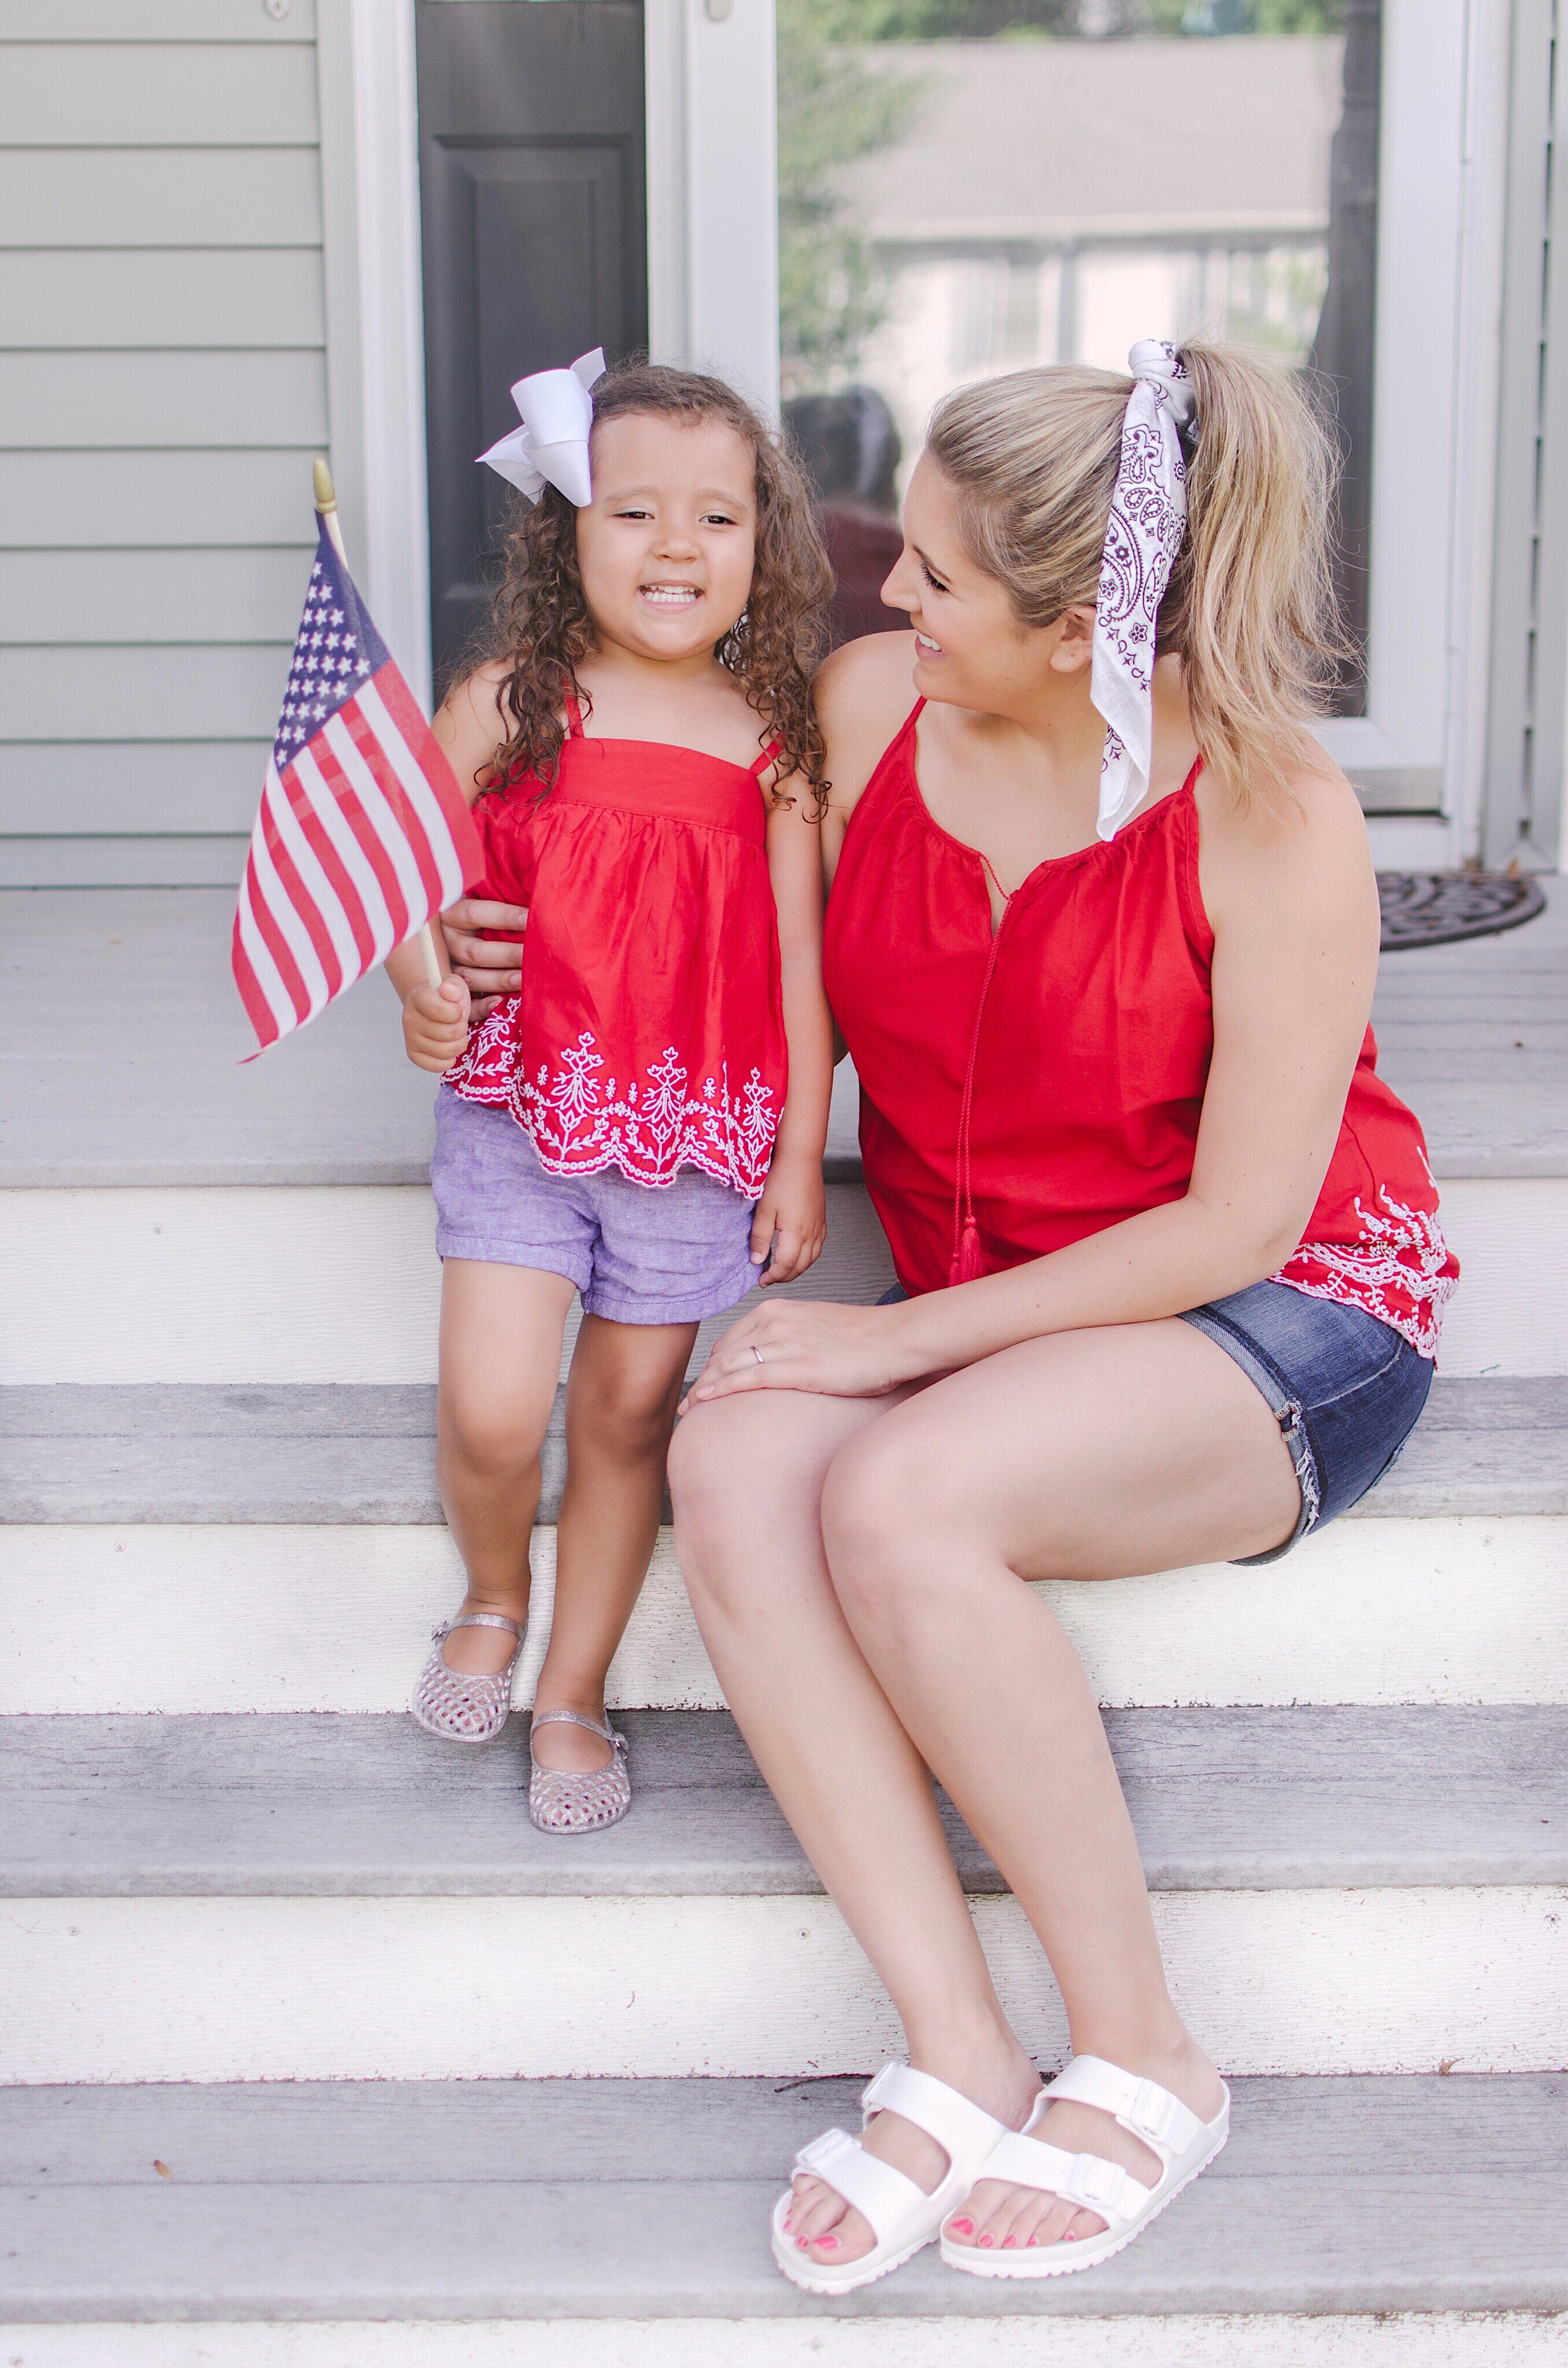 mommy and me matching 4th of july outfits | patriotic outfit roundup - come see over 15 4th of july outfit ideas! bylaurenm.com